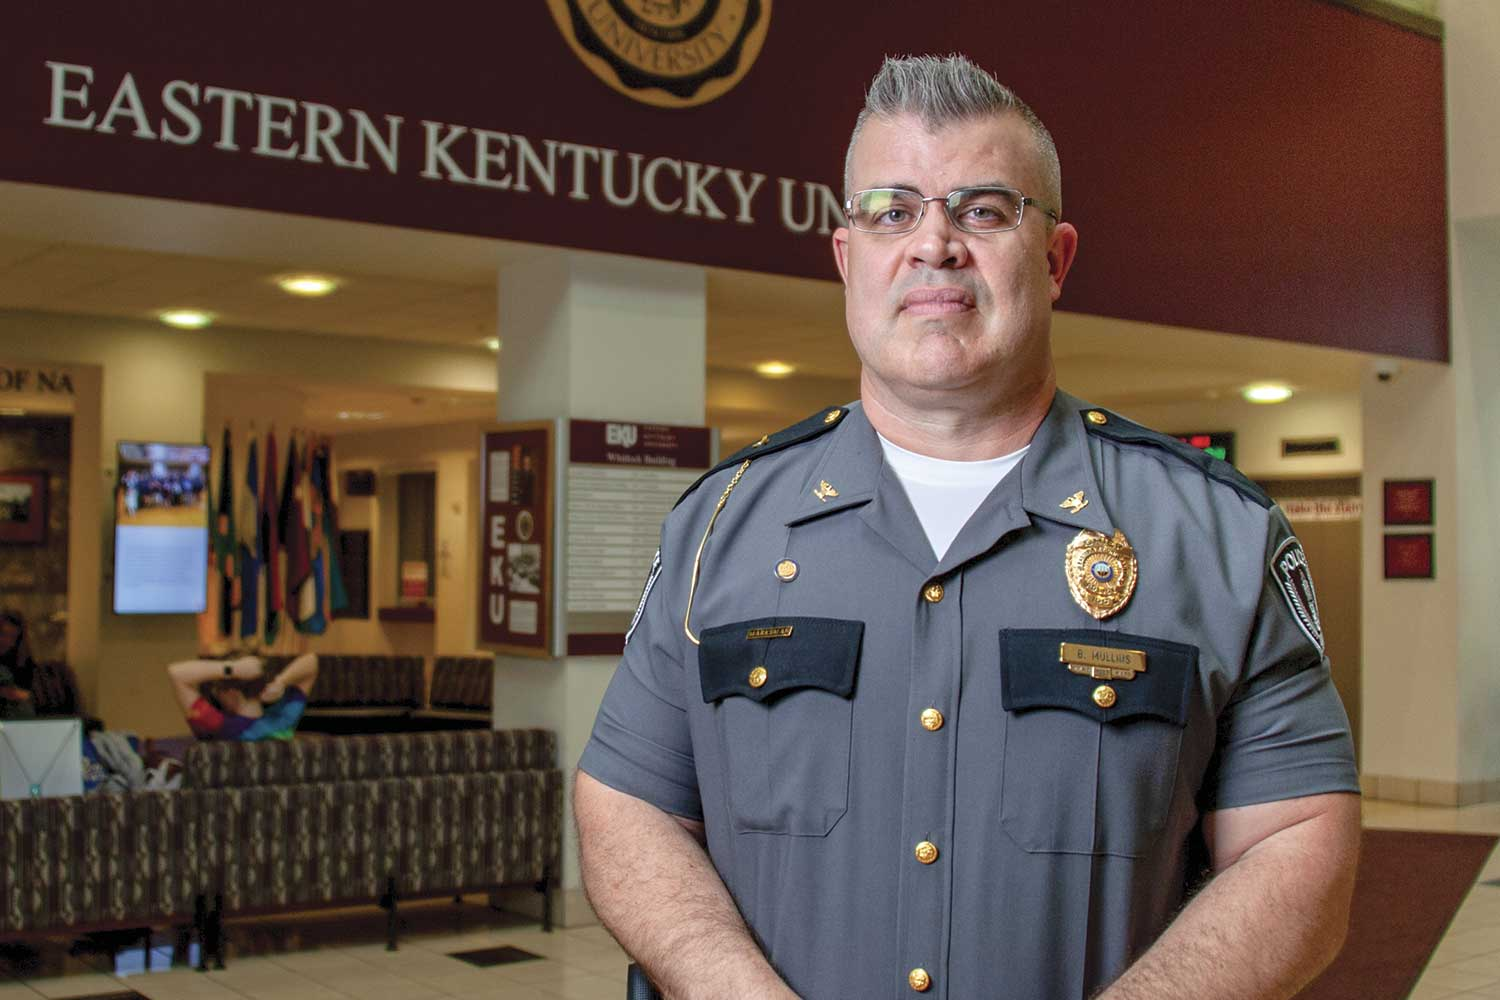 Eastern Kentucky University Police Chief Brian Mullins said being chief of a university police department is a blessing. (Photo by Jim Robertson)